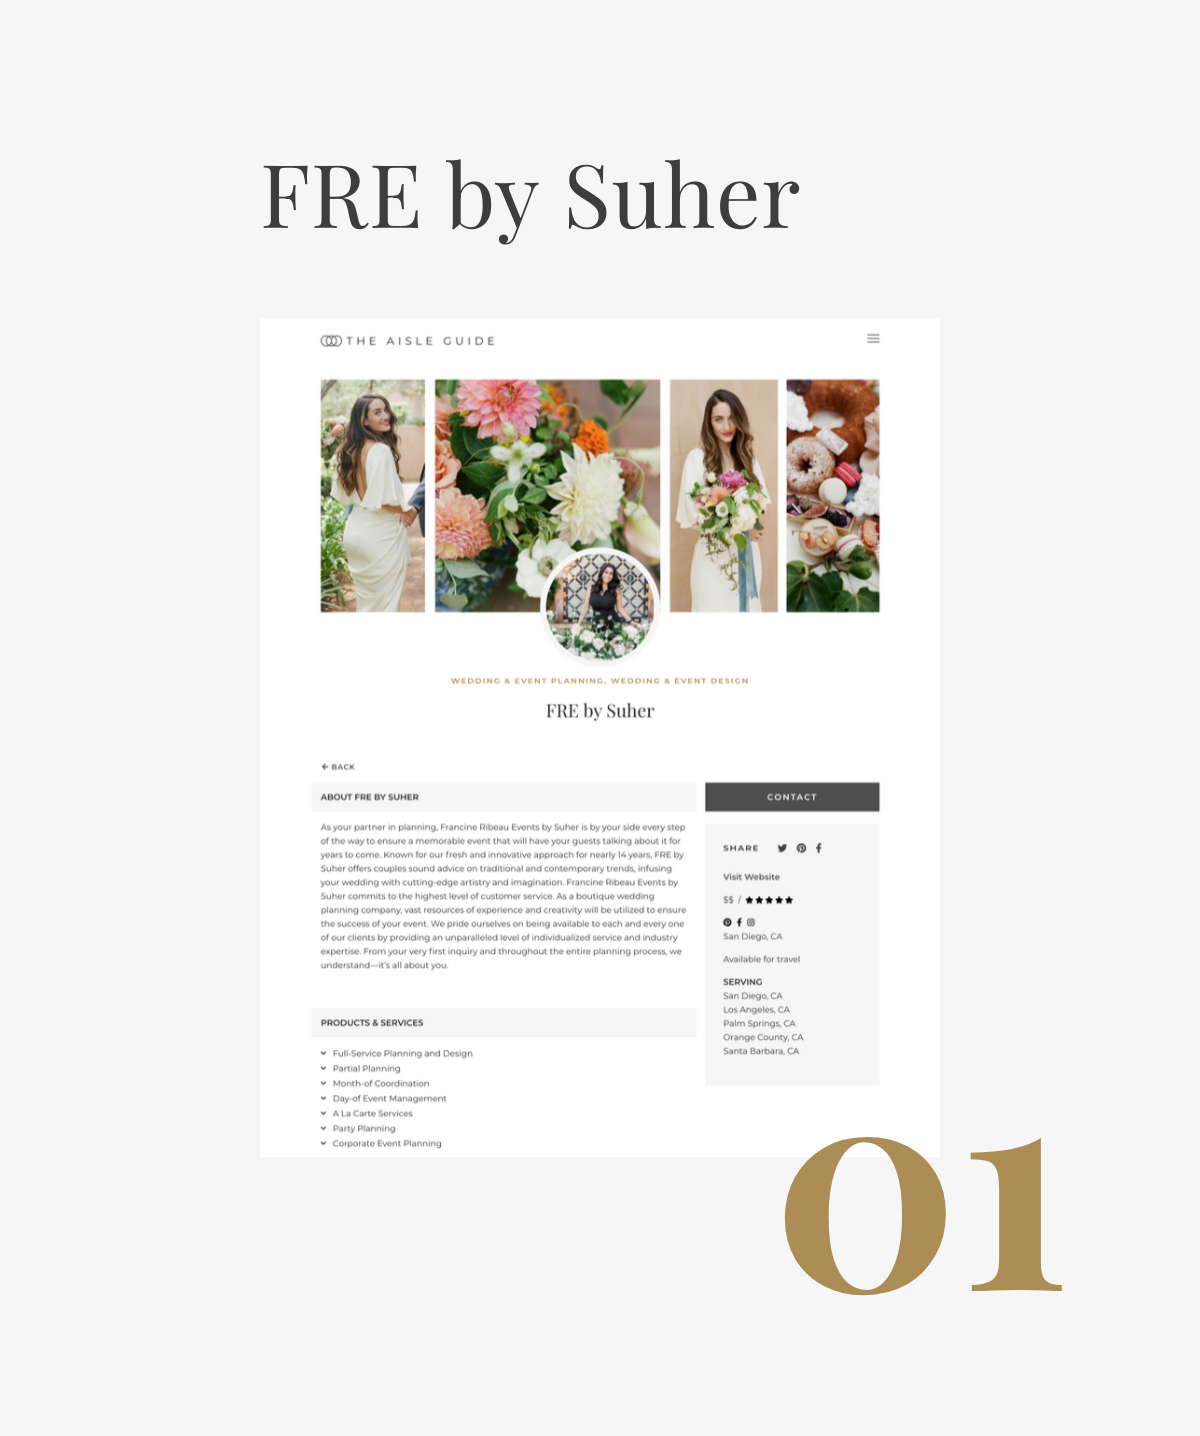 FRE by Suher listing